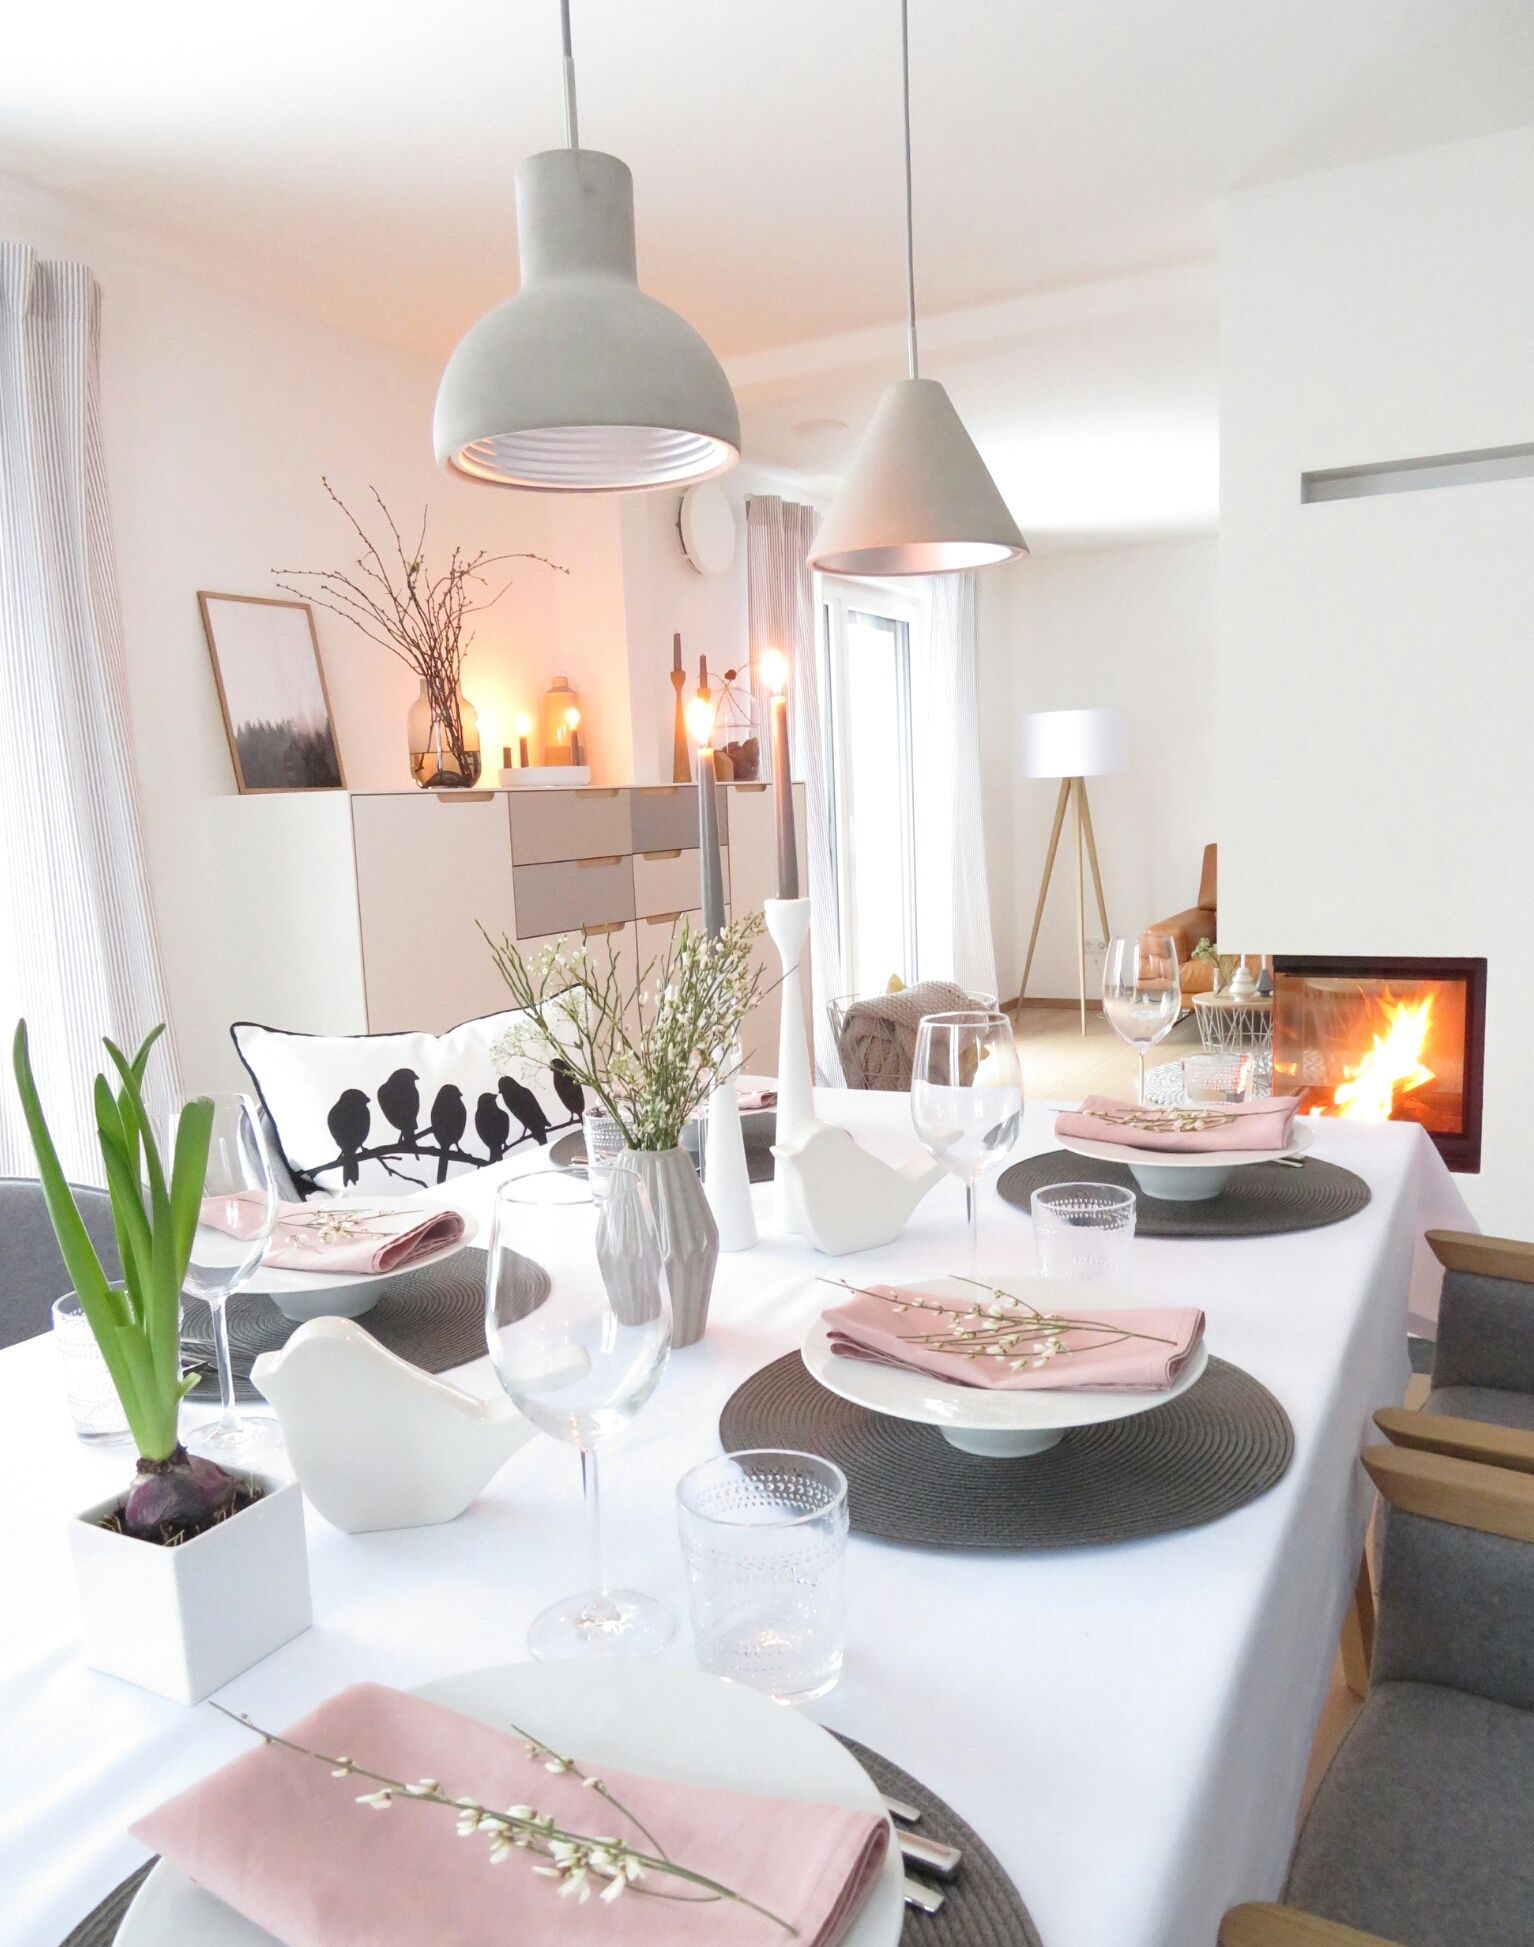 Wochenende In 2019 Home Decorating Ideas Haus Deko Wohn